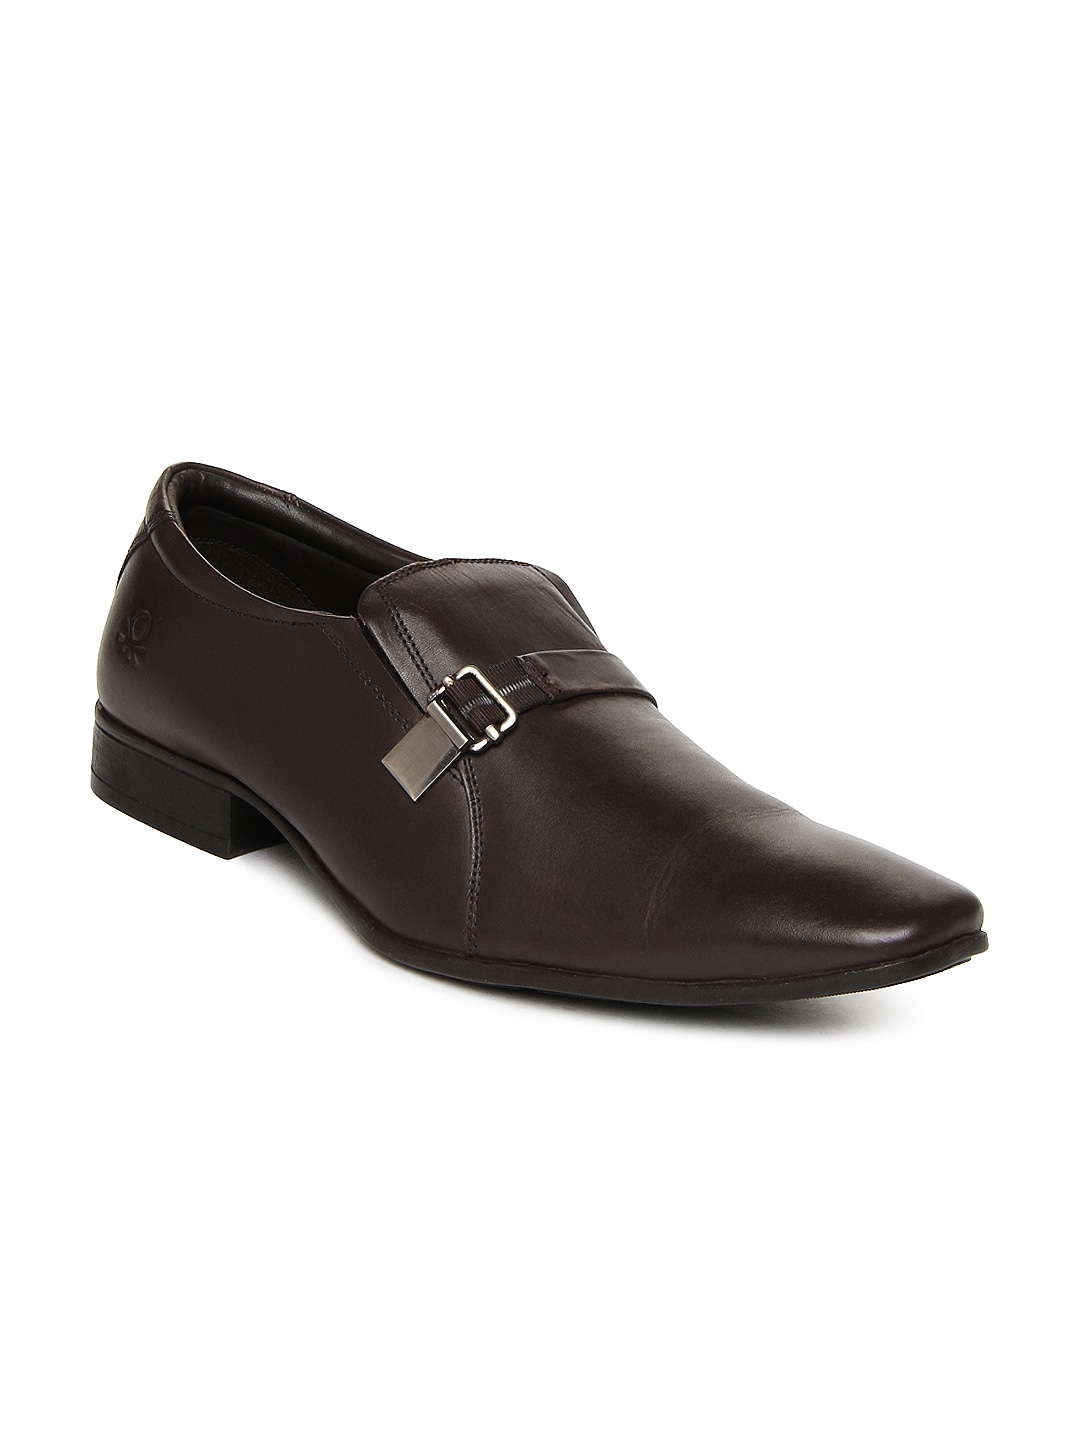 united colors of benetton brown leather semi formal shoes